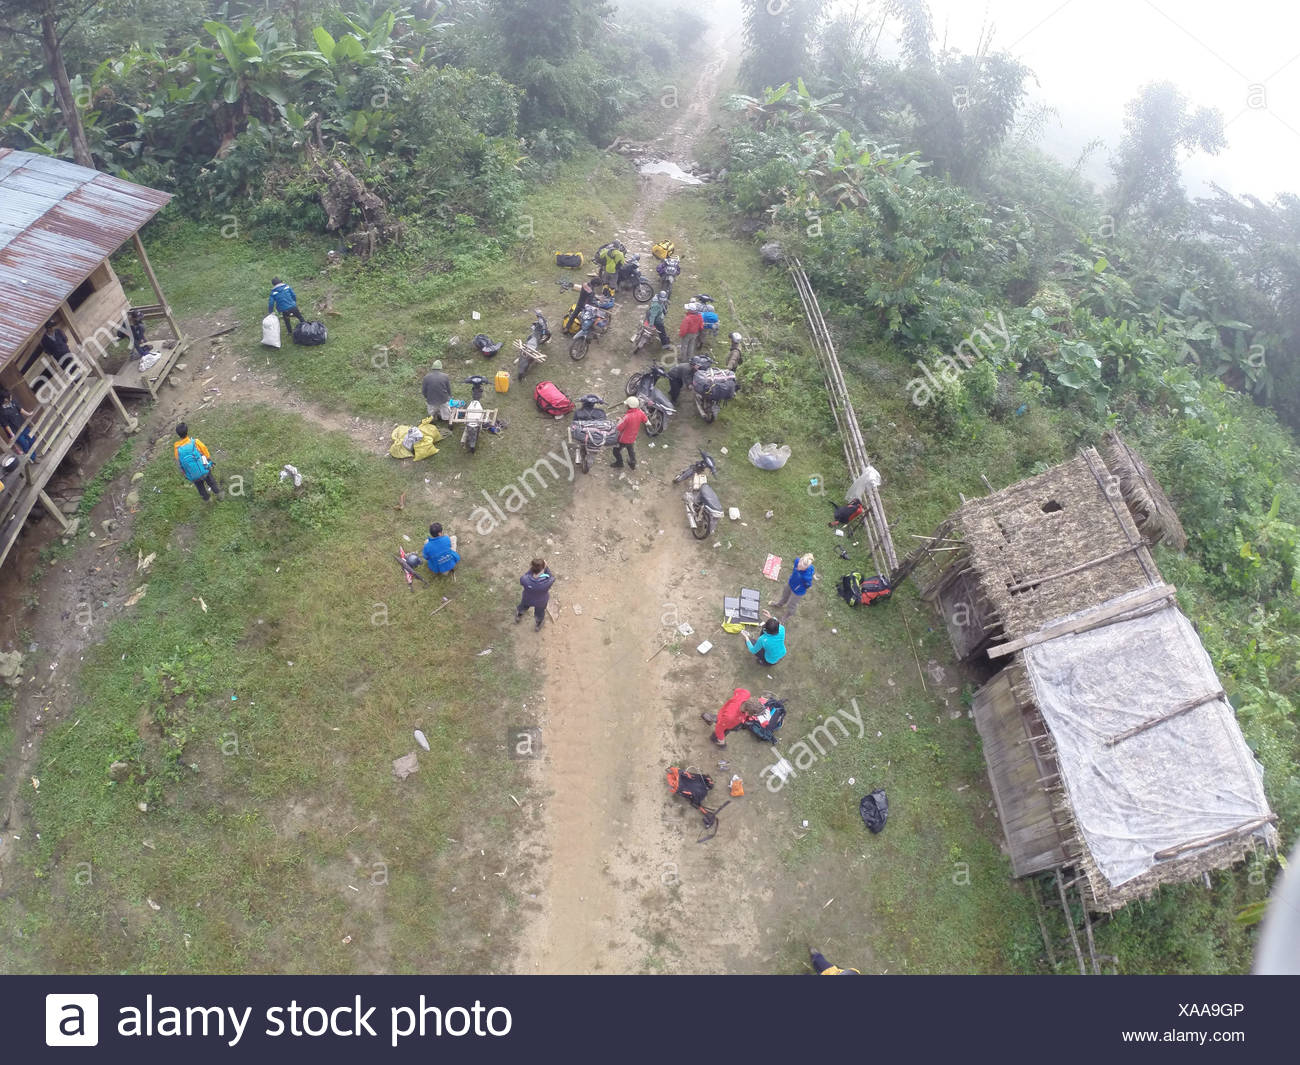 A high angle view of the expedition party organizing gear and equipment. - Stock Image